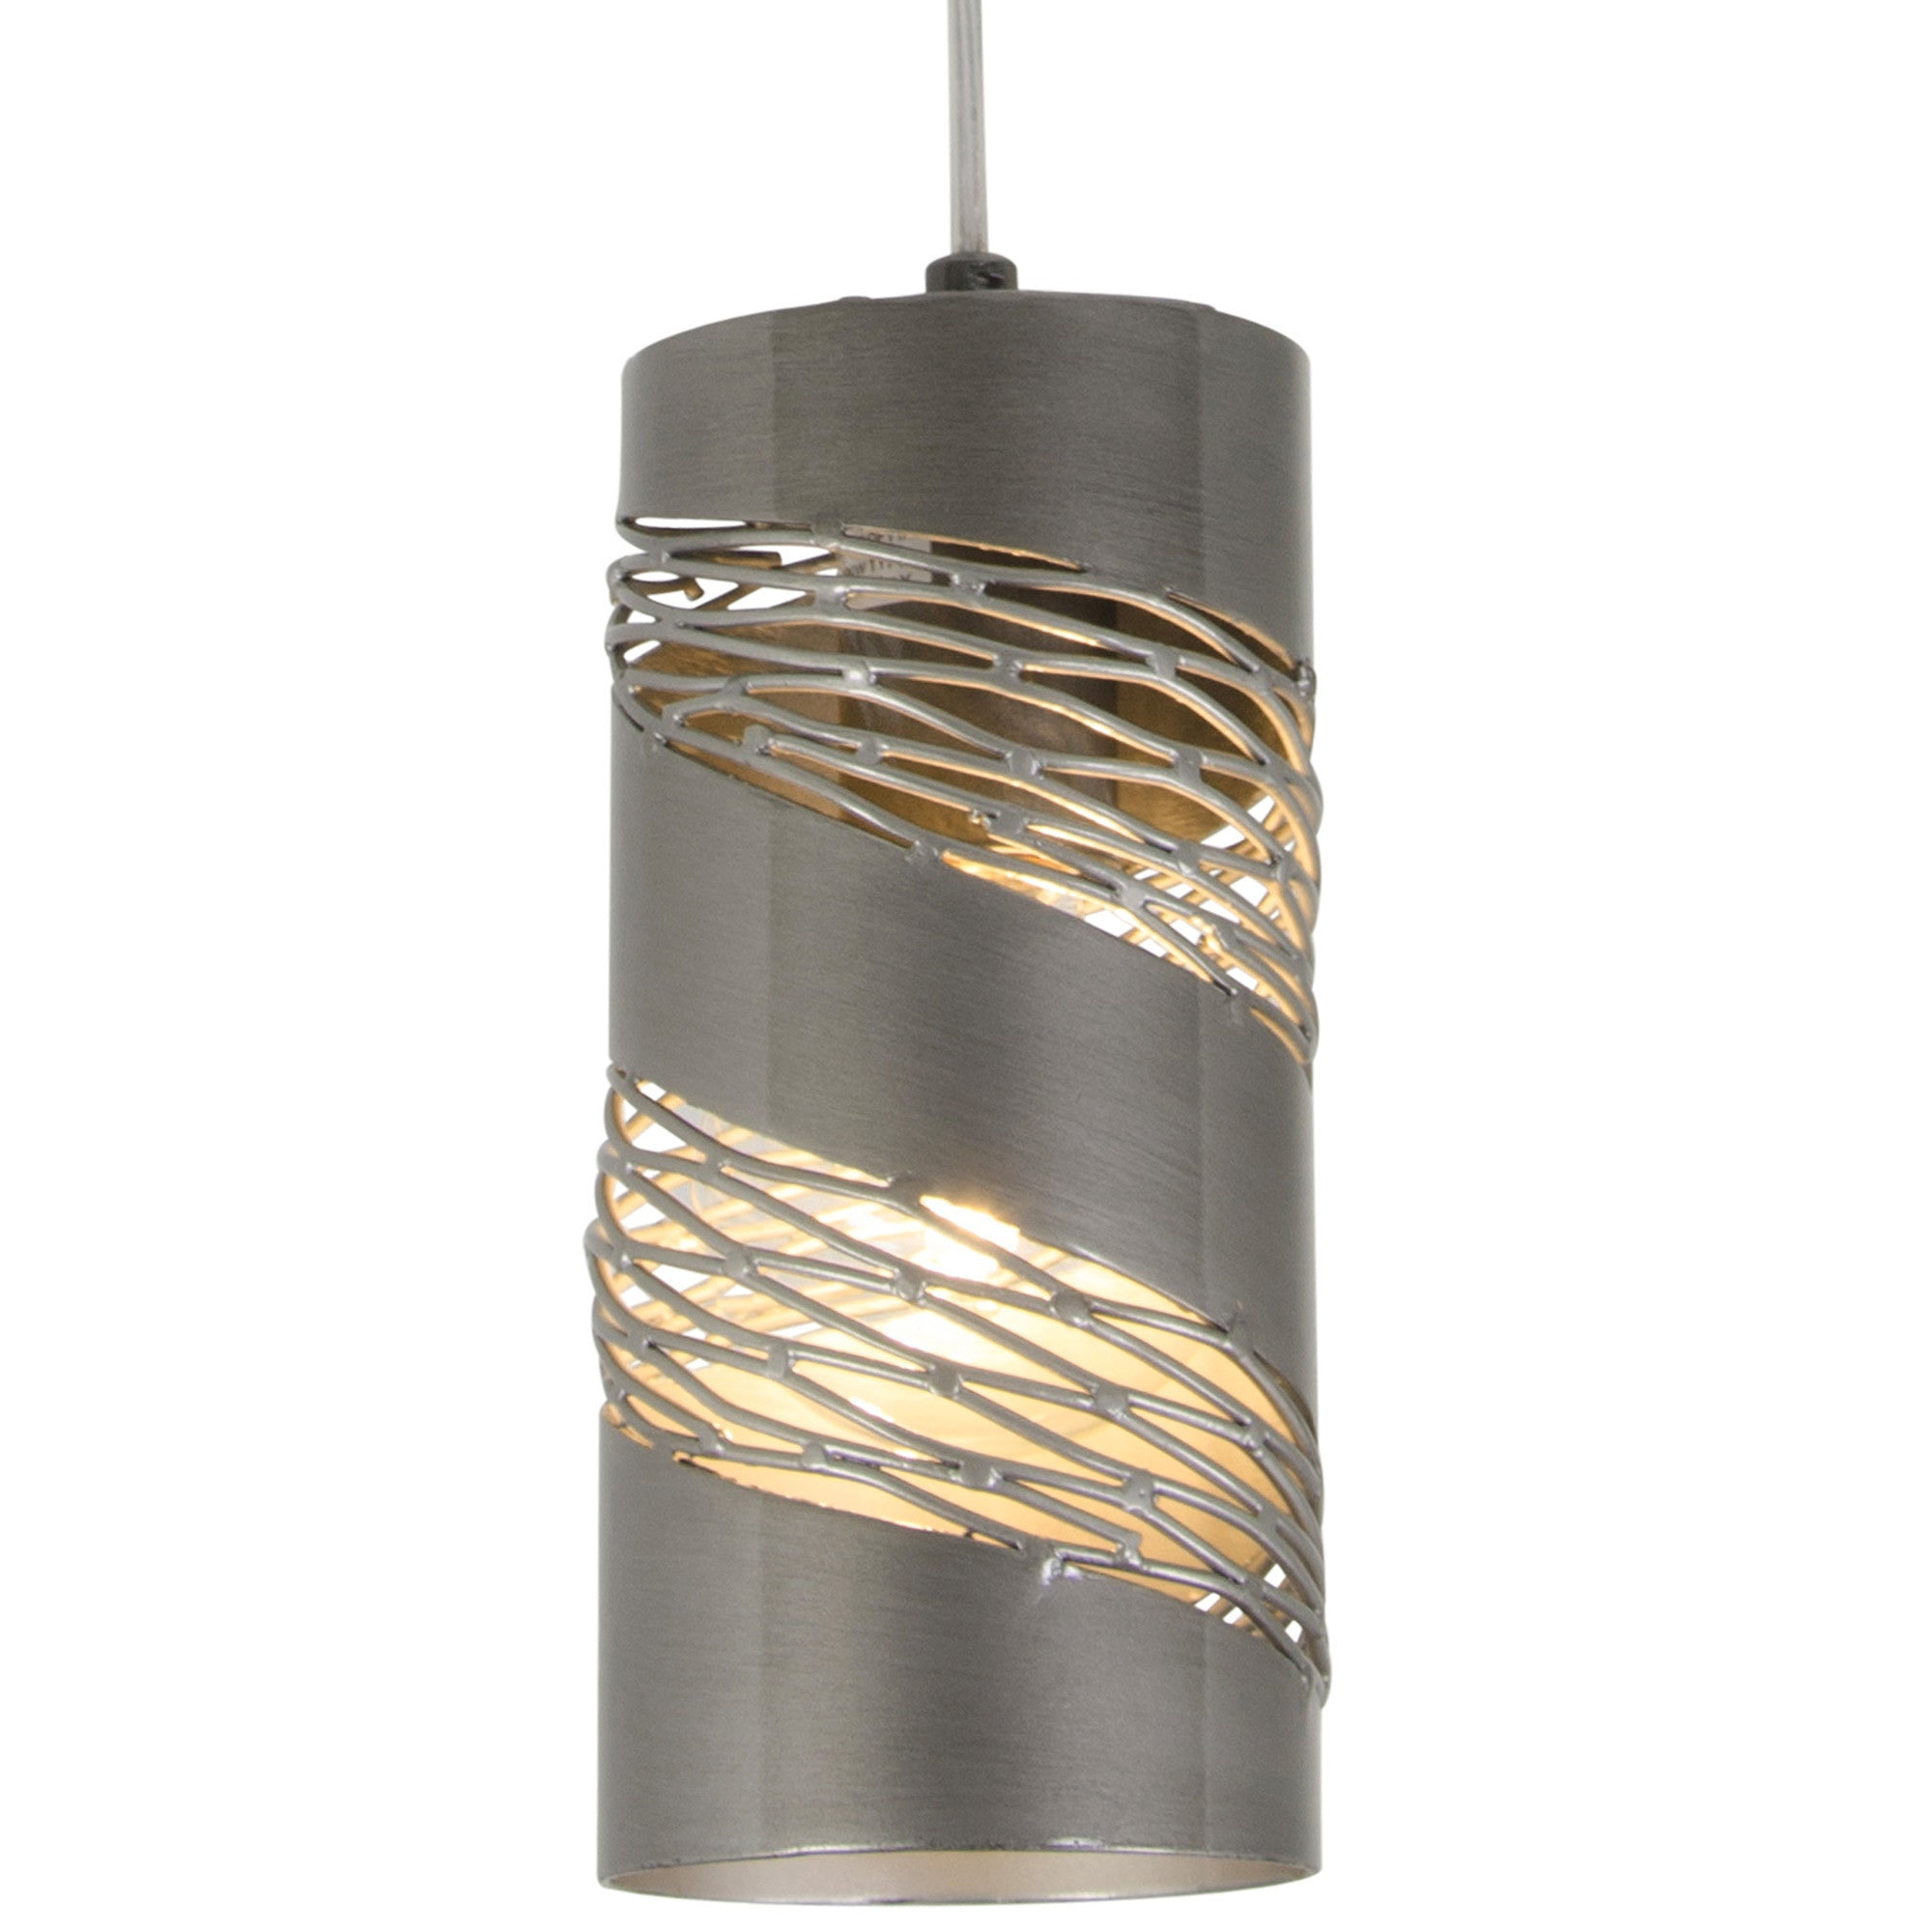 pendant shade kit make lightwhite lighthow light elk drum cylinder large lighting fabric seductive delectable to